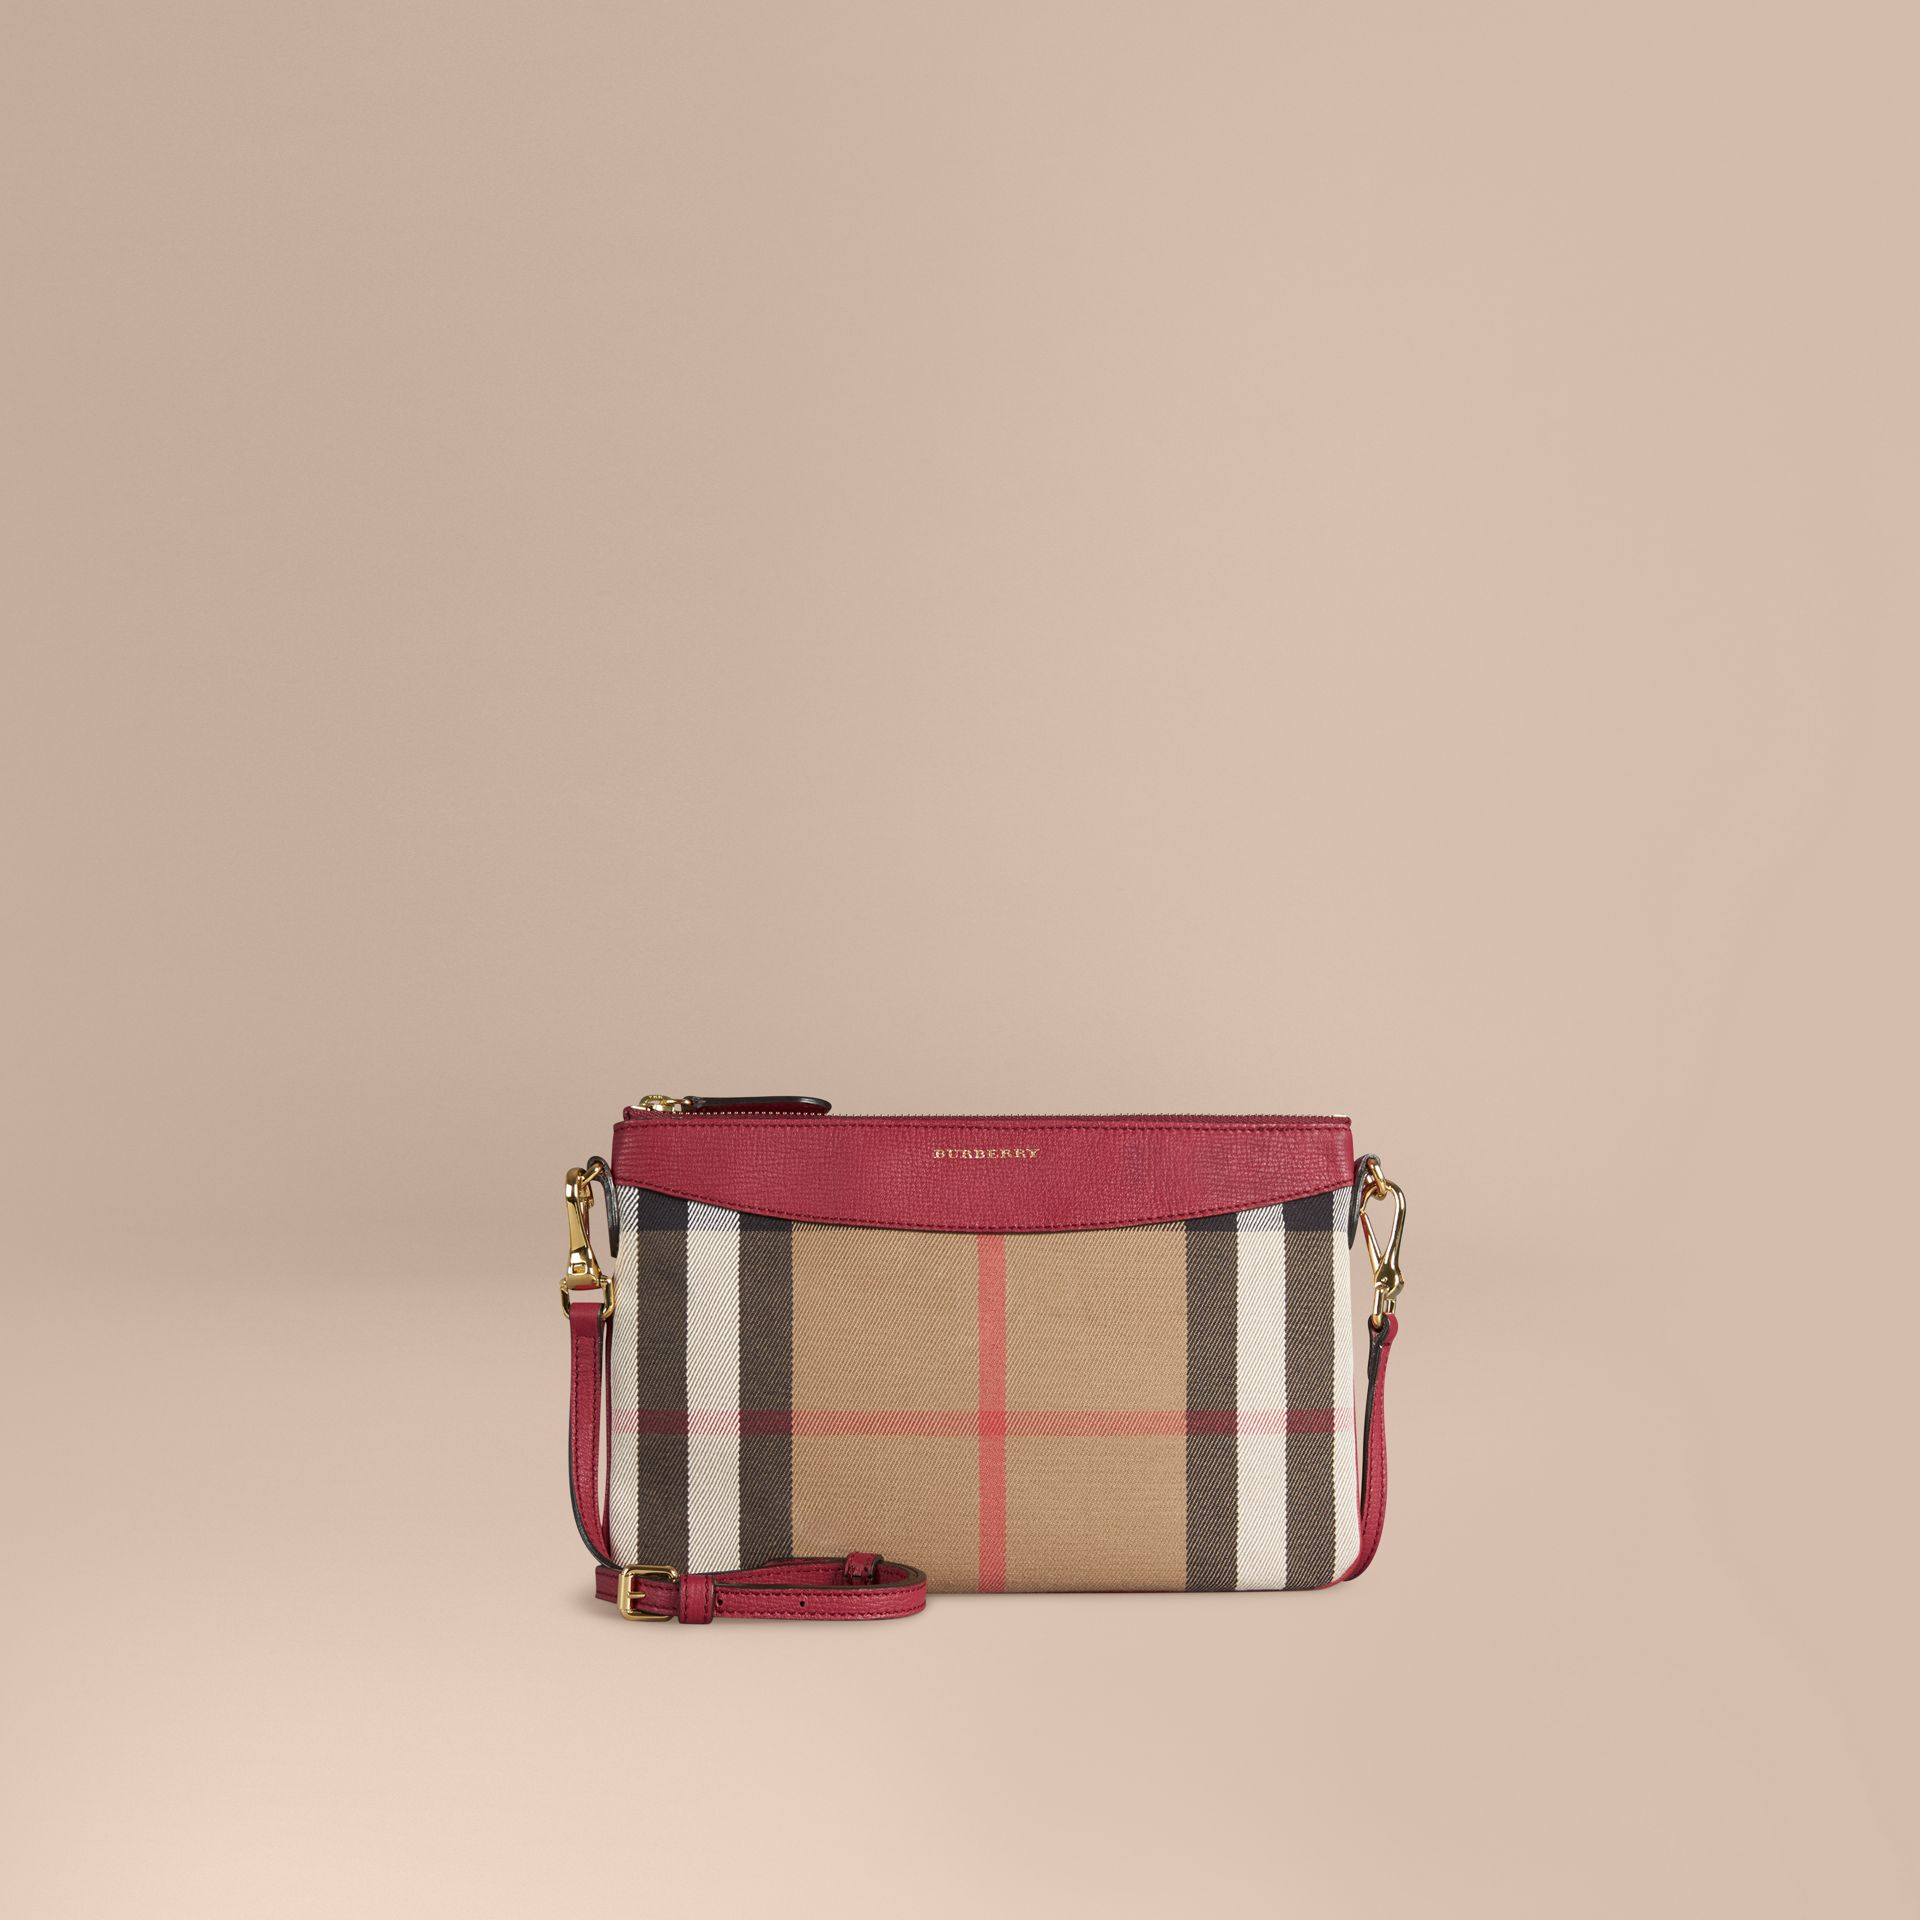 House Check and Leather Clutch Bag Military Red - gallery image 1